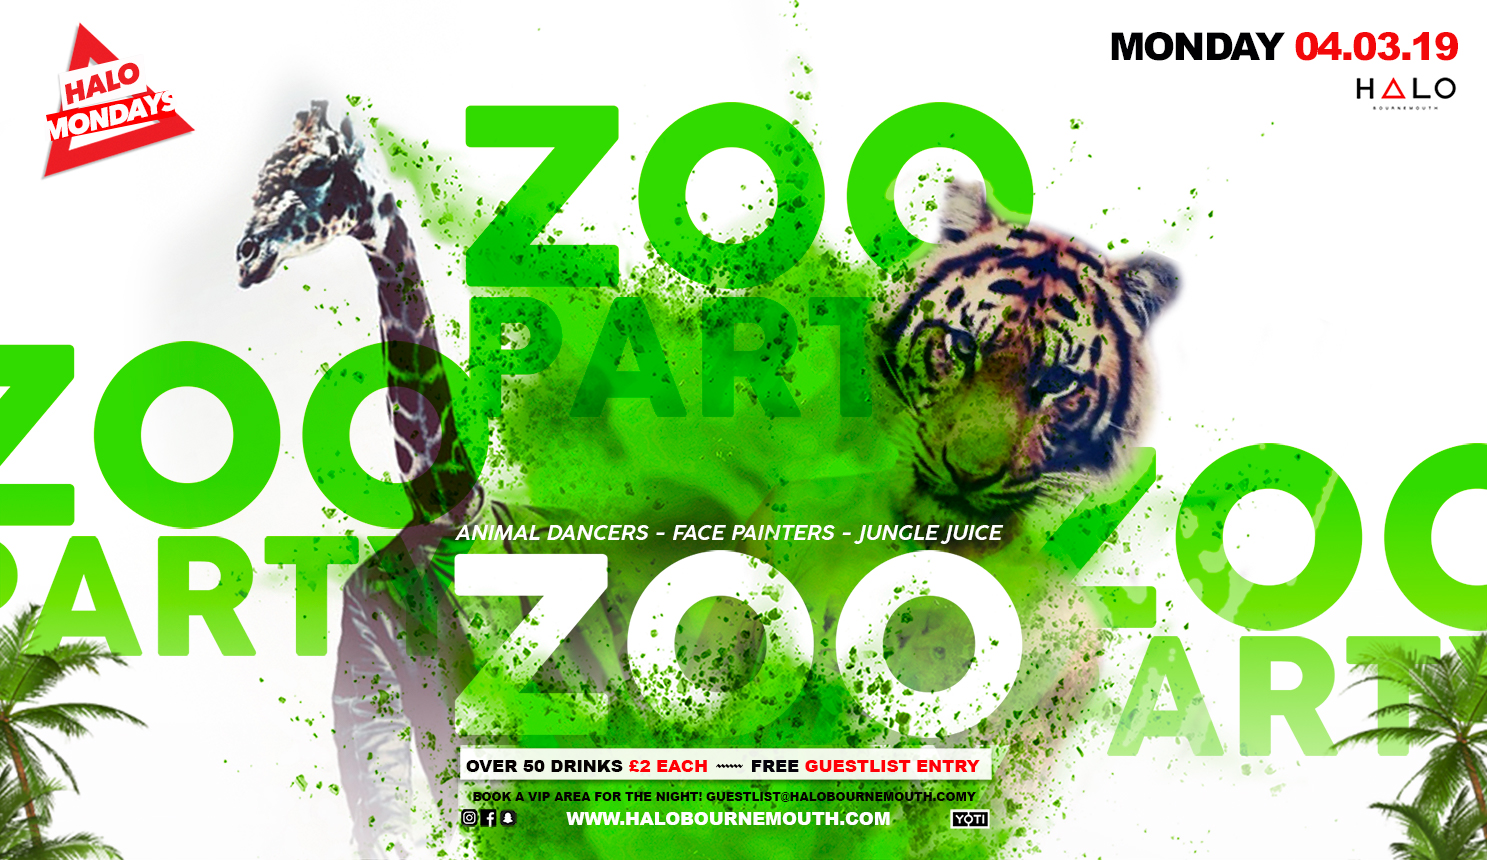 Zoo Party 04.03.19 Halo Bournemouth